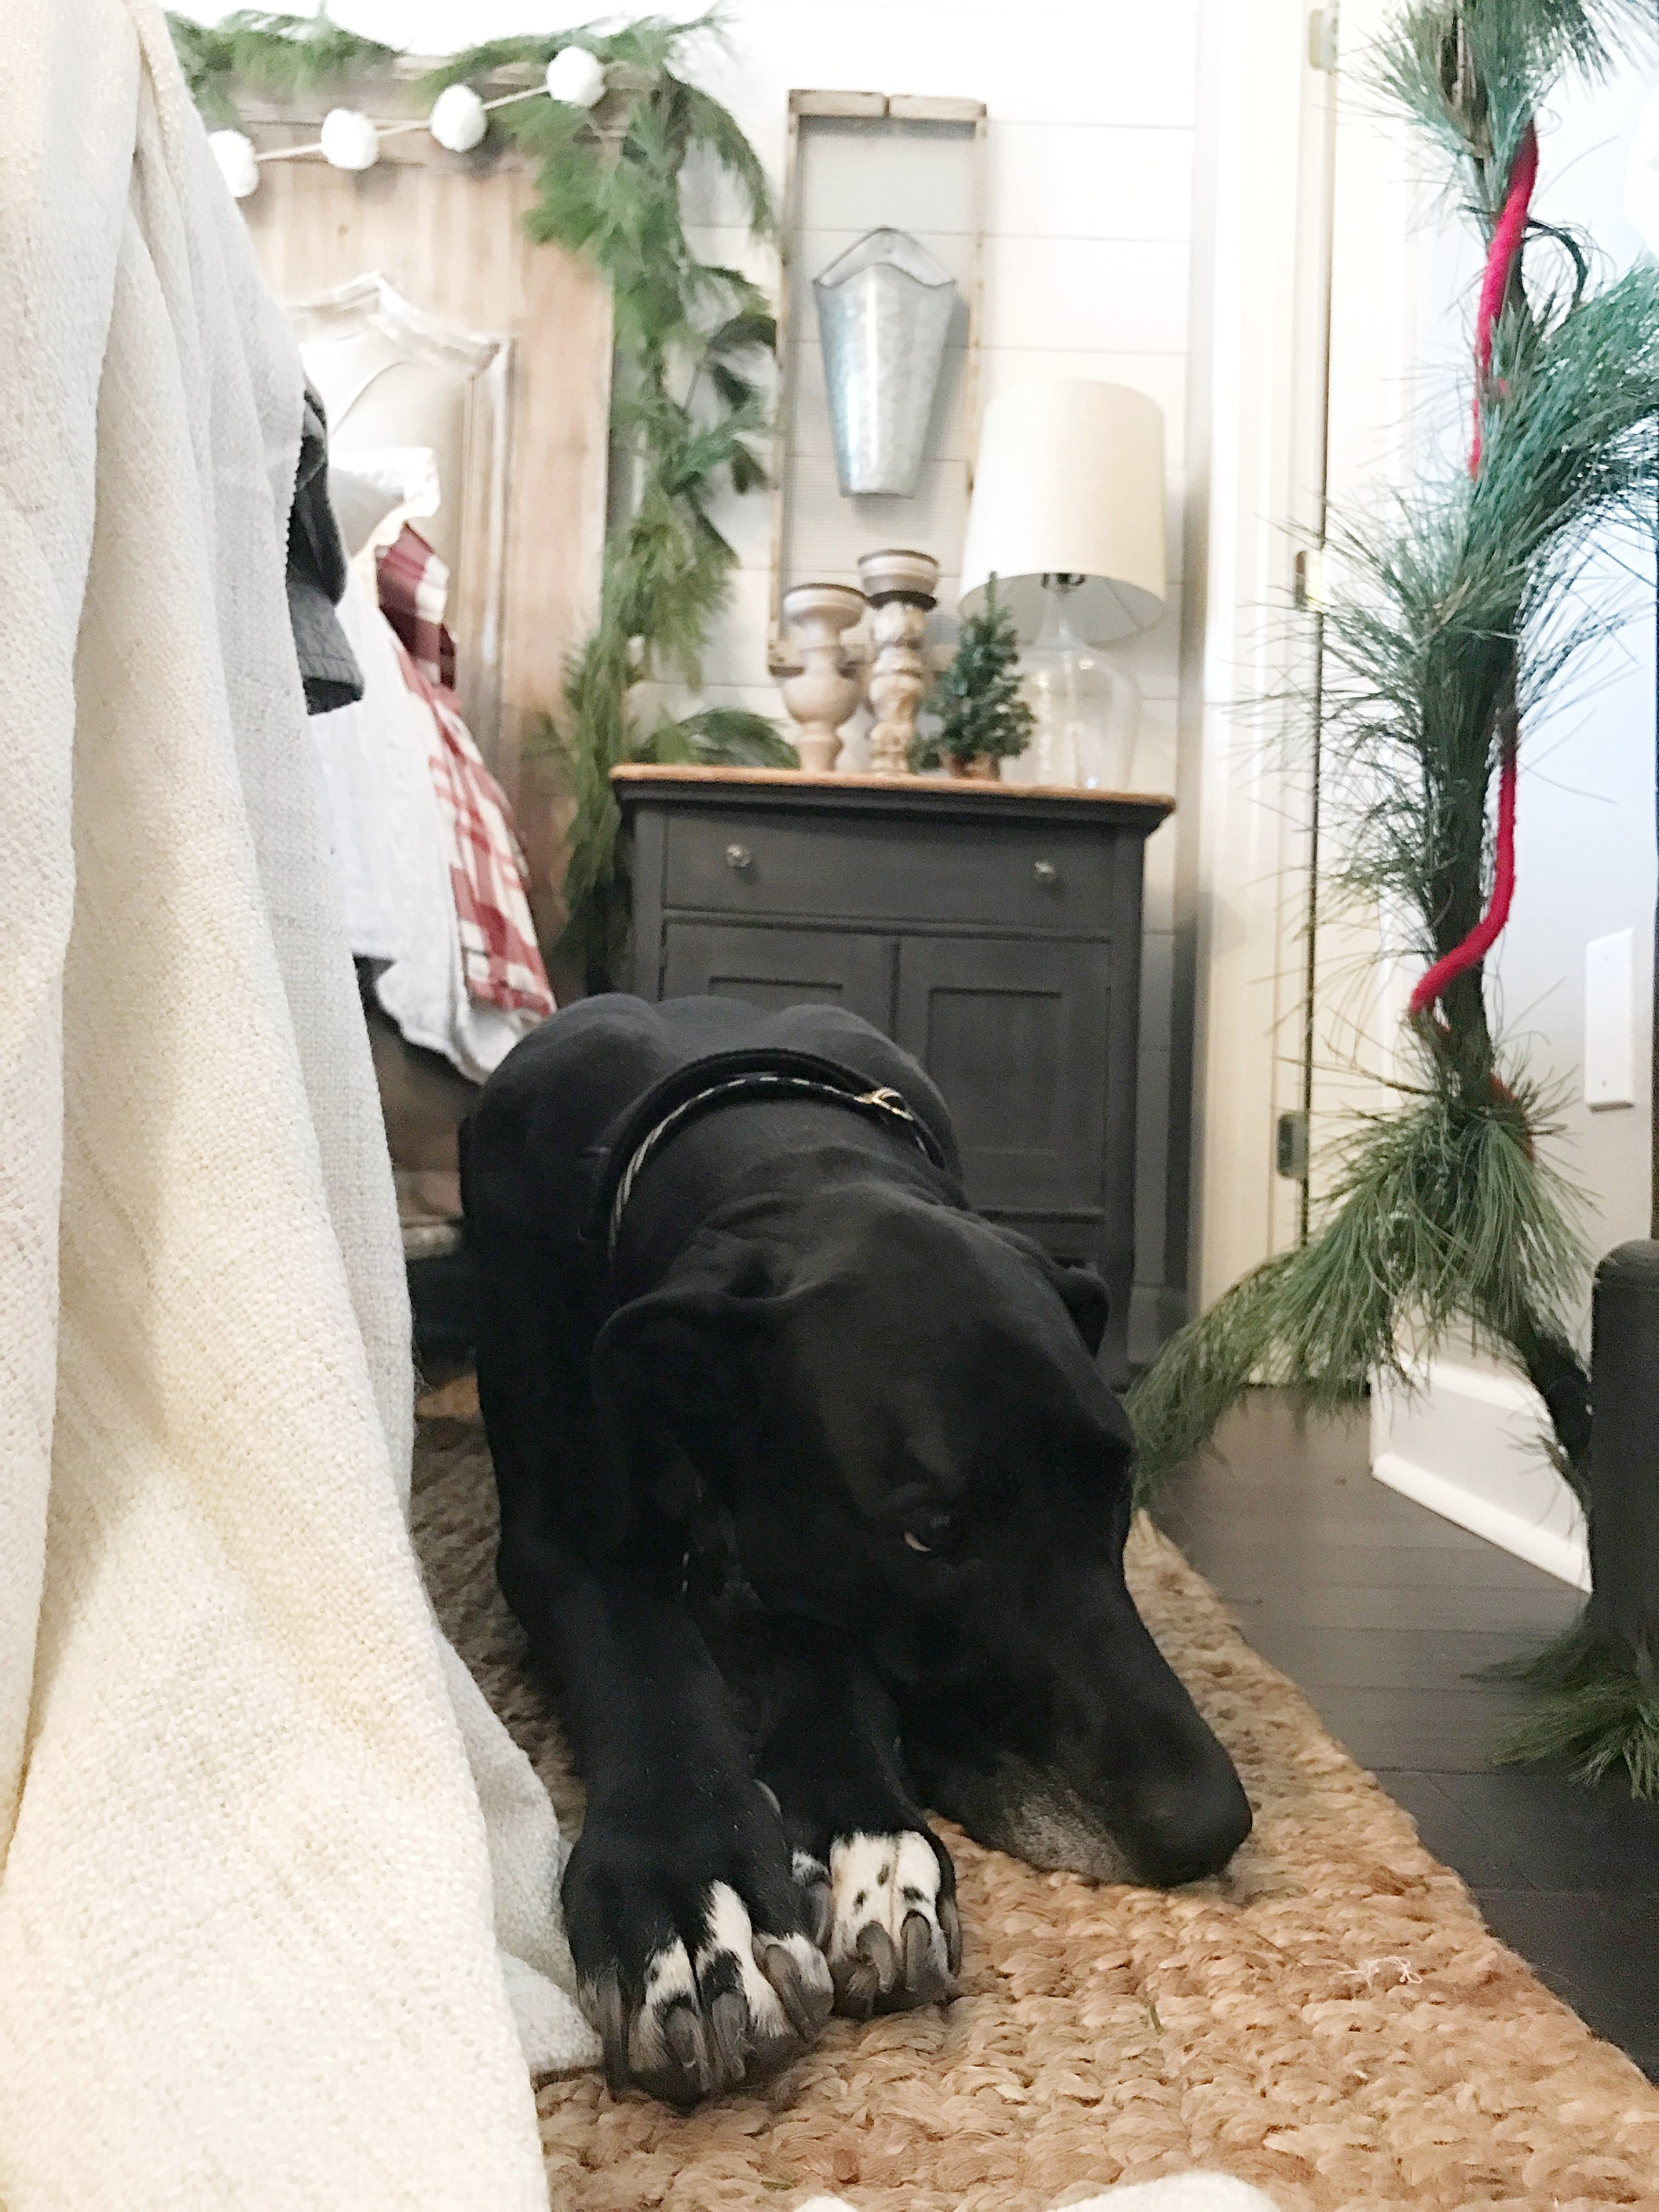 Farmhouse Christmas Bedroom Tour- Bella Kayla Miller's Great Dane Enjoying the Room- Plum Pretty Decor and Design